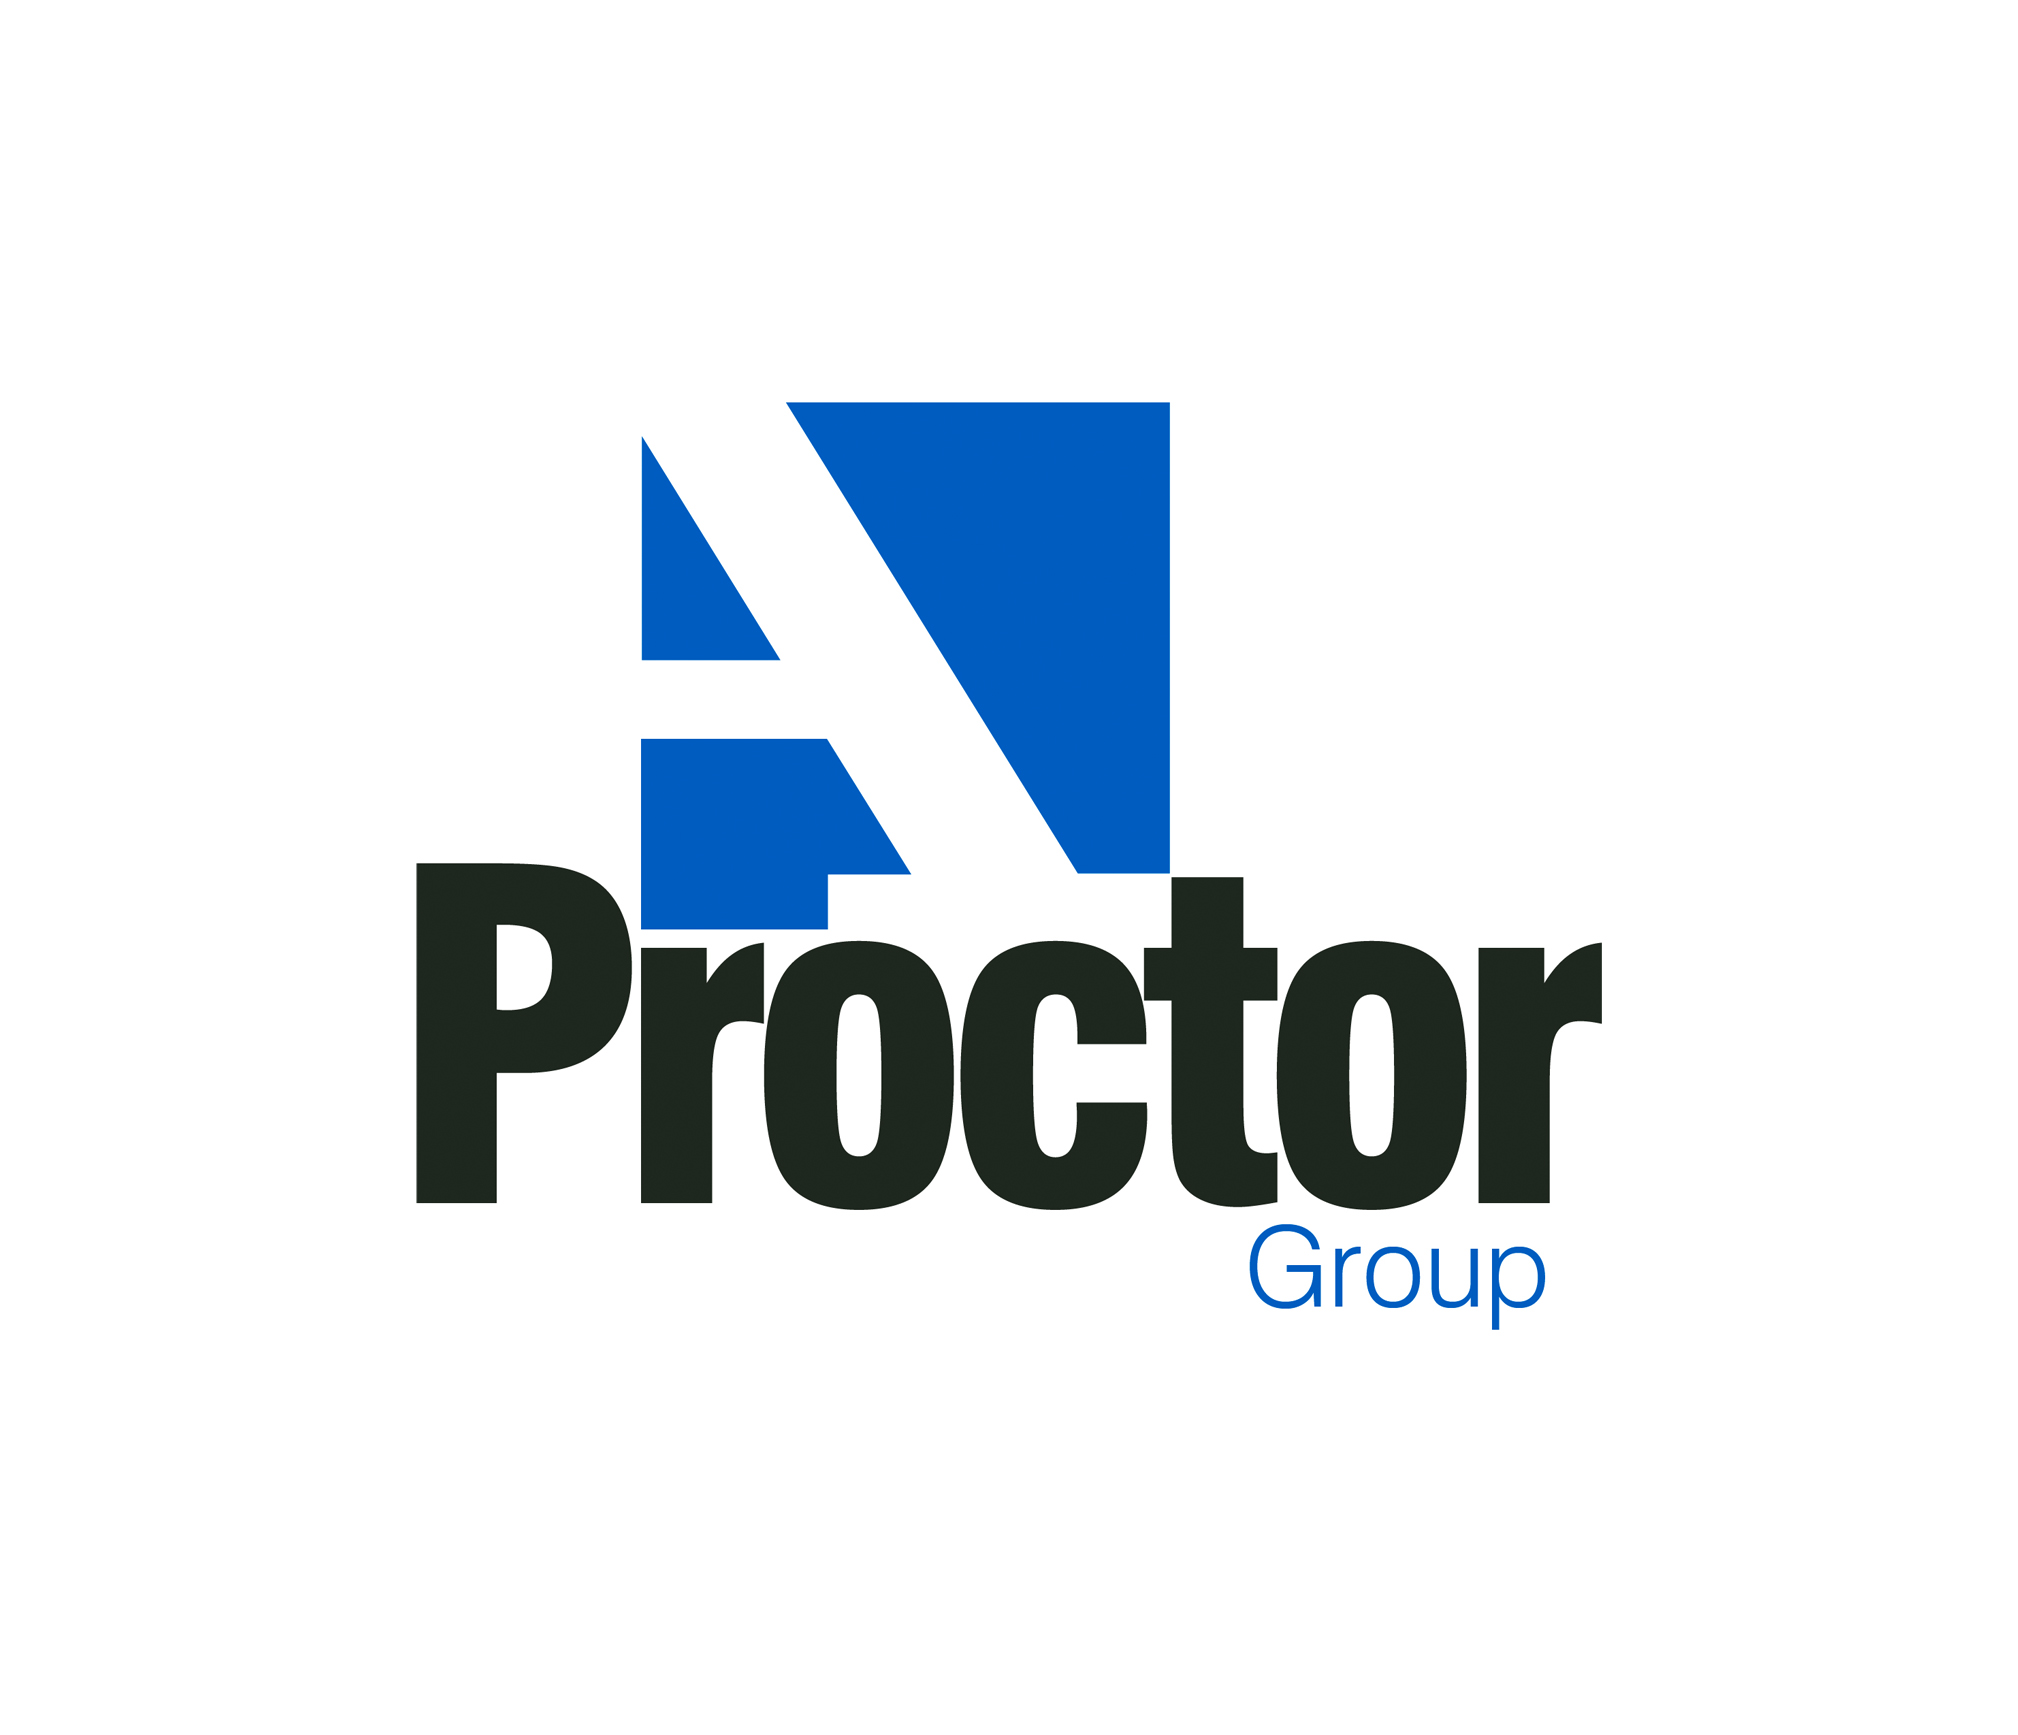 Proctor Group Insultation Supplies Logo